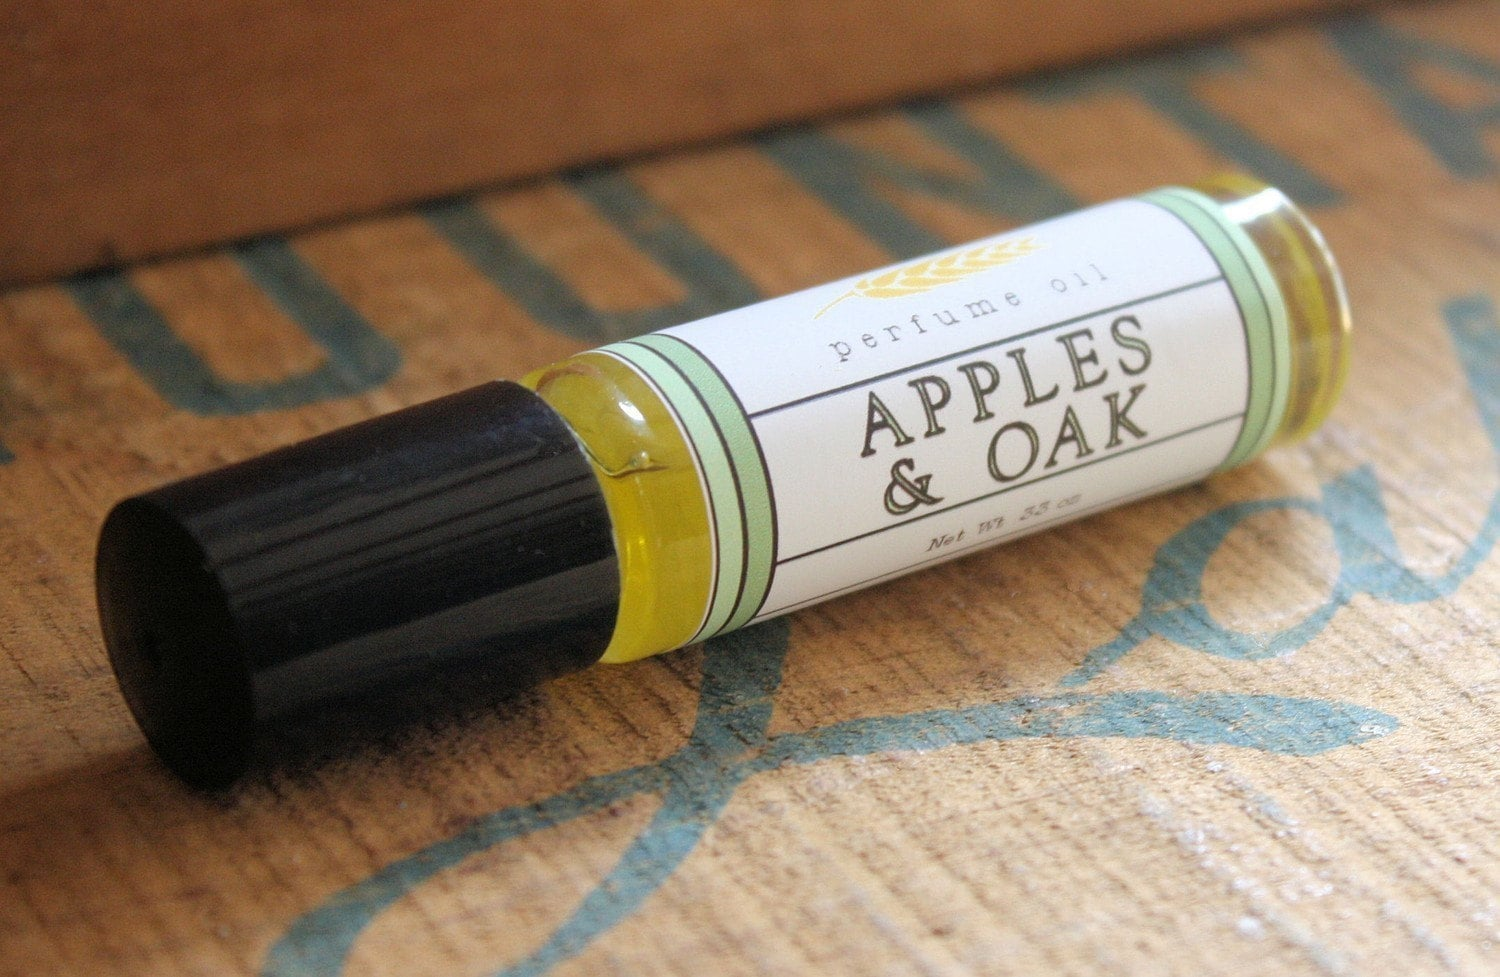 Apples and Oak Perfume Oil Coconut Hemp Roll On